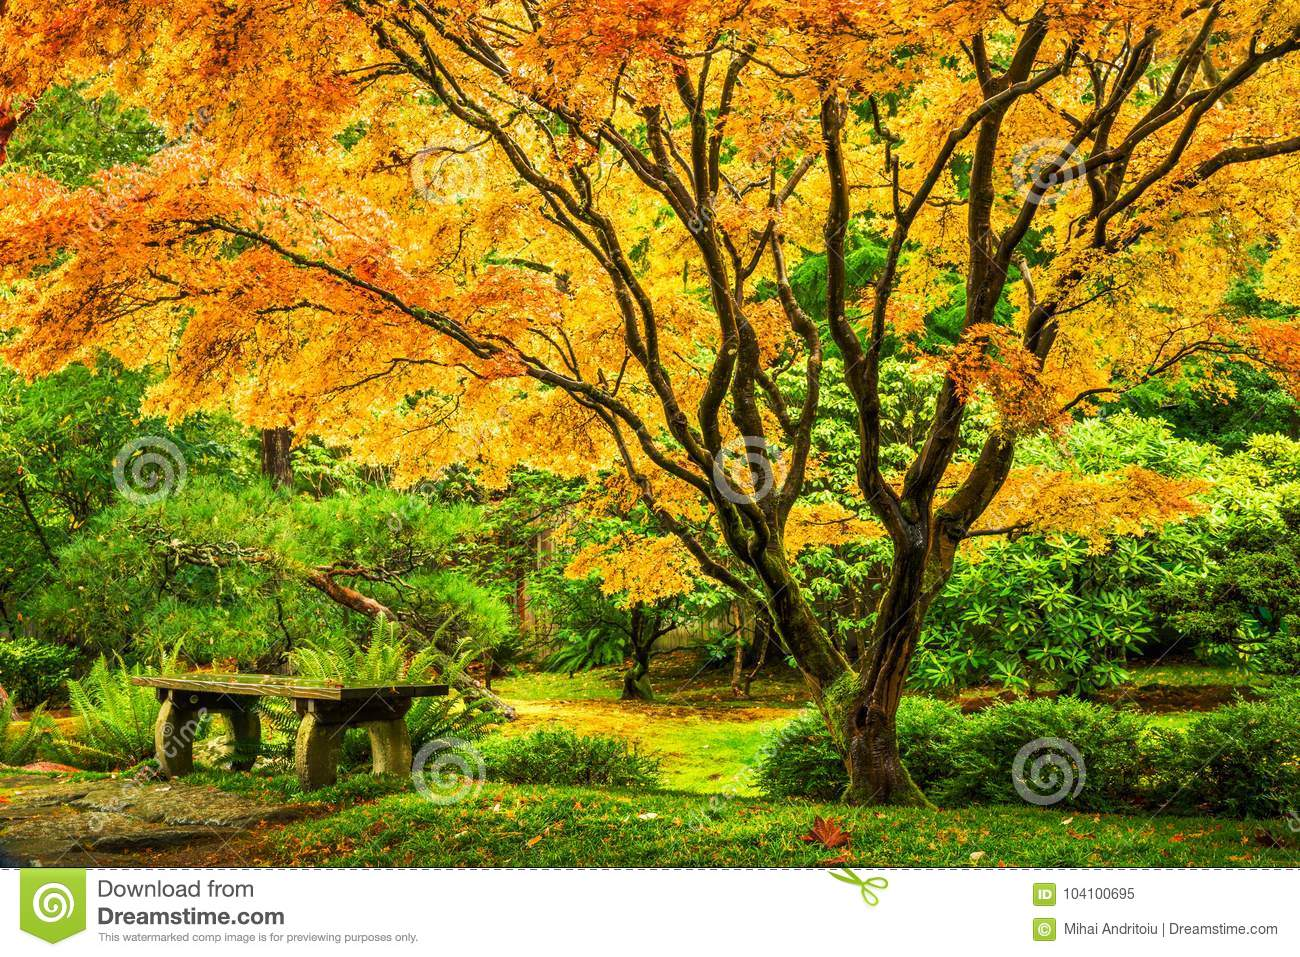 Japanese Maple Tree With Golden Fall Foliage Stock Image - Image of ...